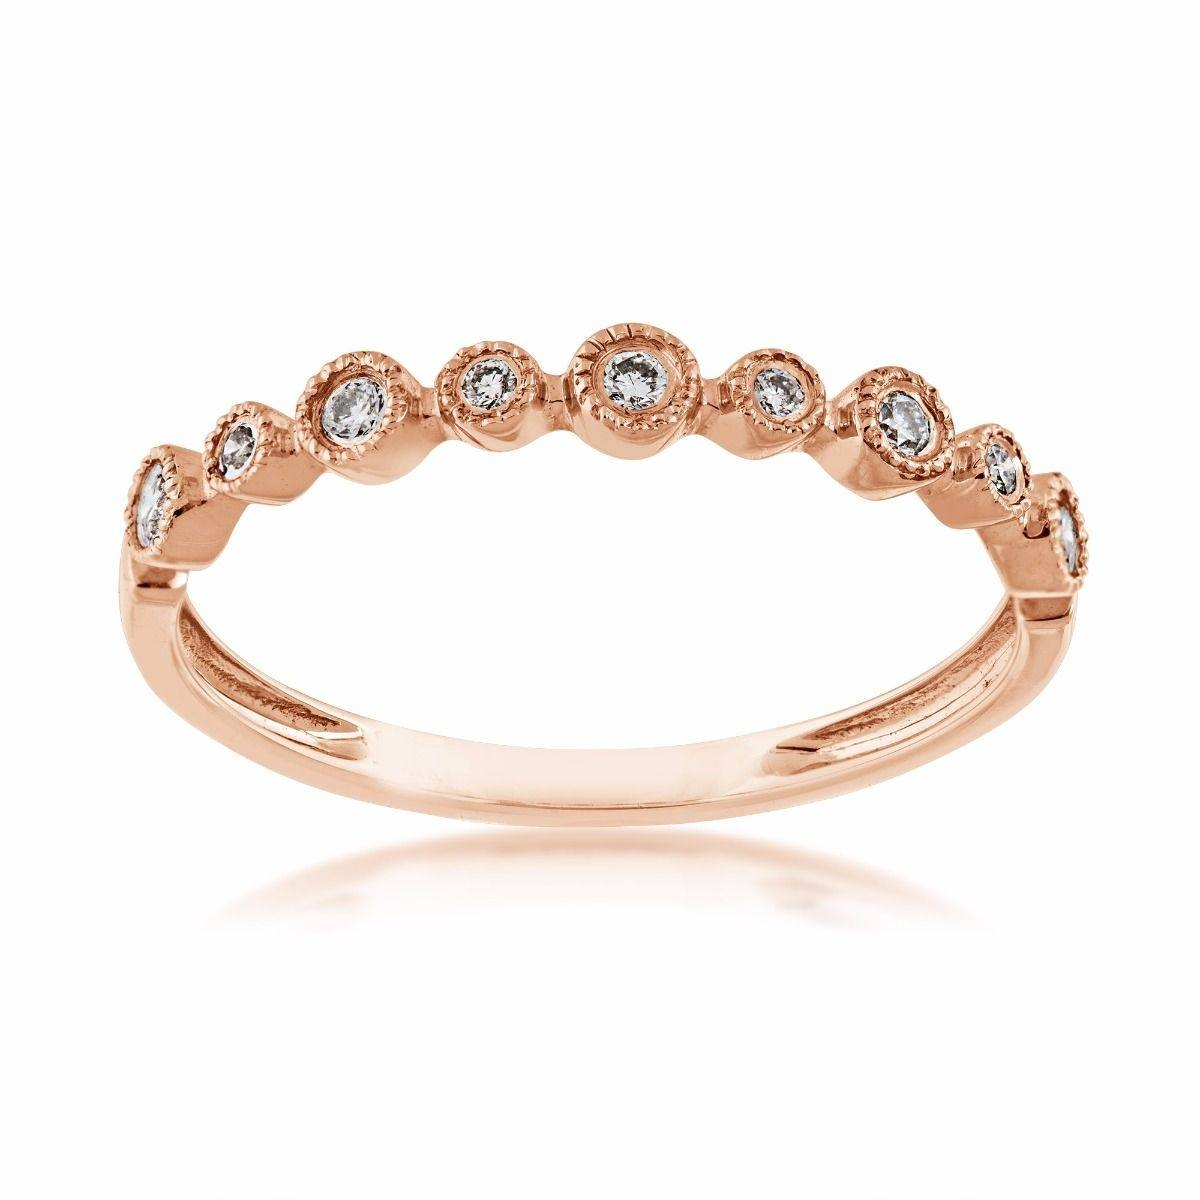 Perfect Match Stackable Diamond Anniversary Ring In 10 Kt. Pink Within Most Current Gold Anniversary Rings (Gallery 21 of 25)